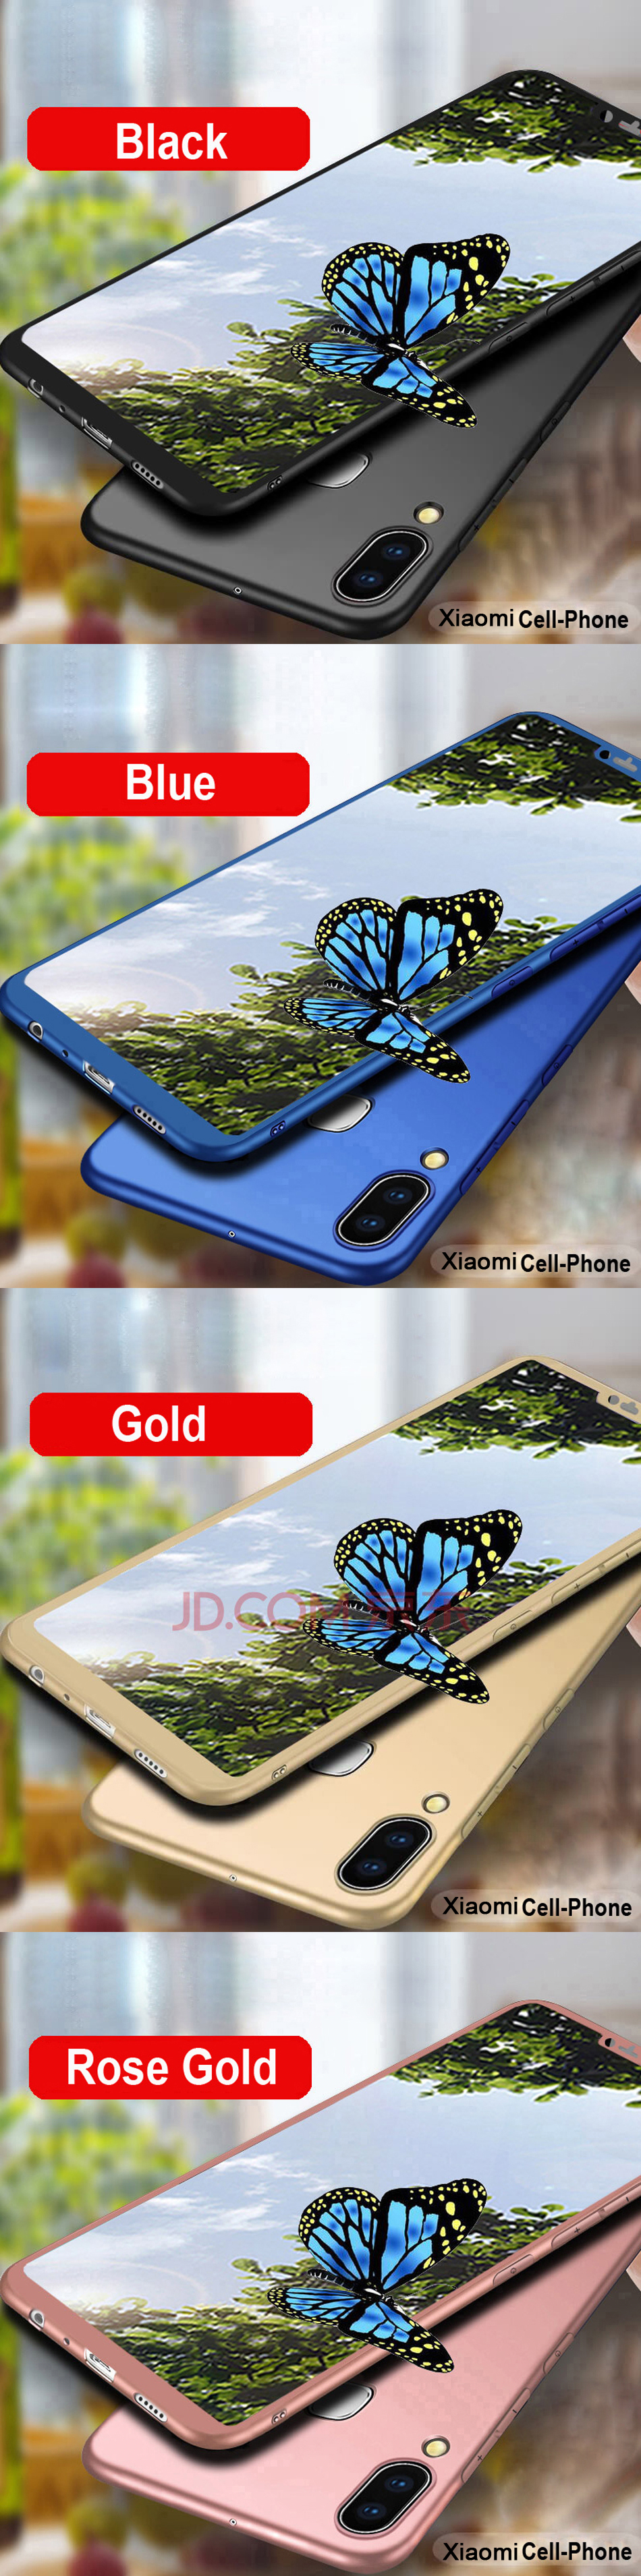 360 Degree Full Cover Case for Xiaomi Mi8 Pro Mi 8 lite Case Matte Cover for Xiaomi Mi 9 Mi A2 lite A1 Shell Glass Coque (10)